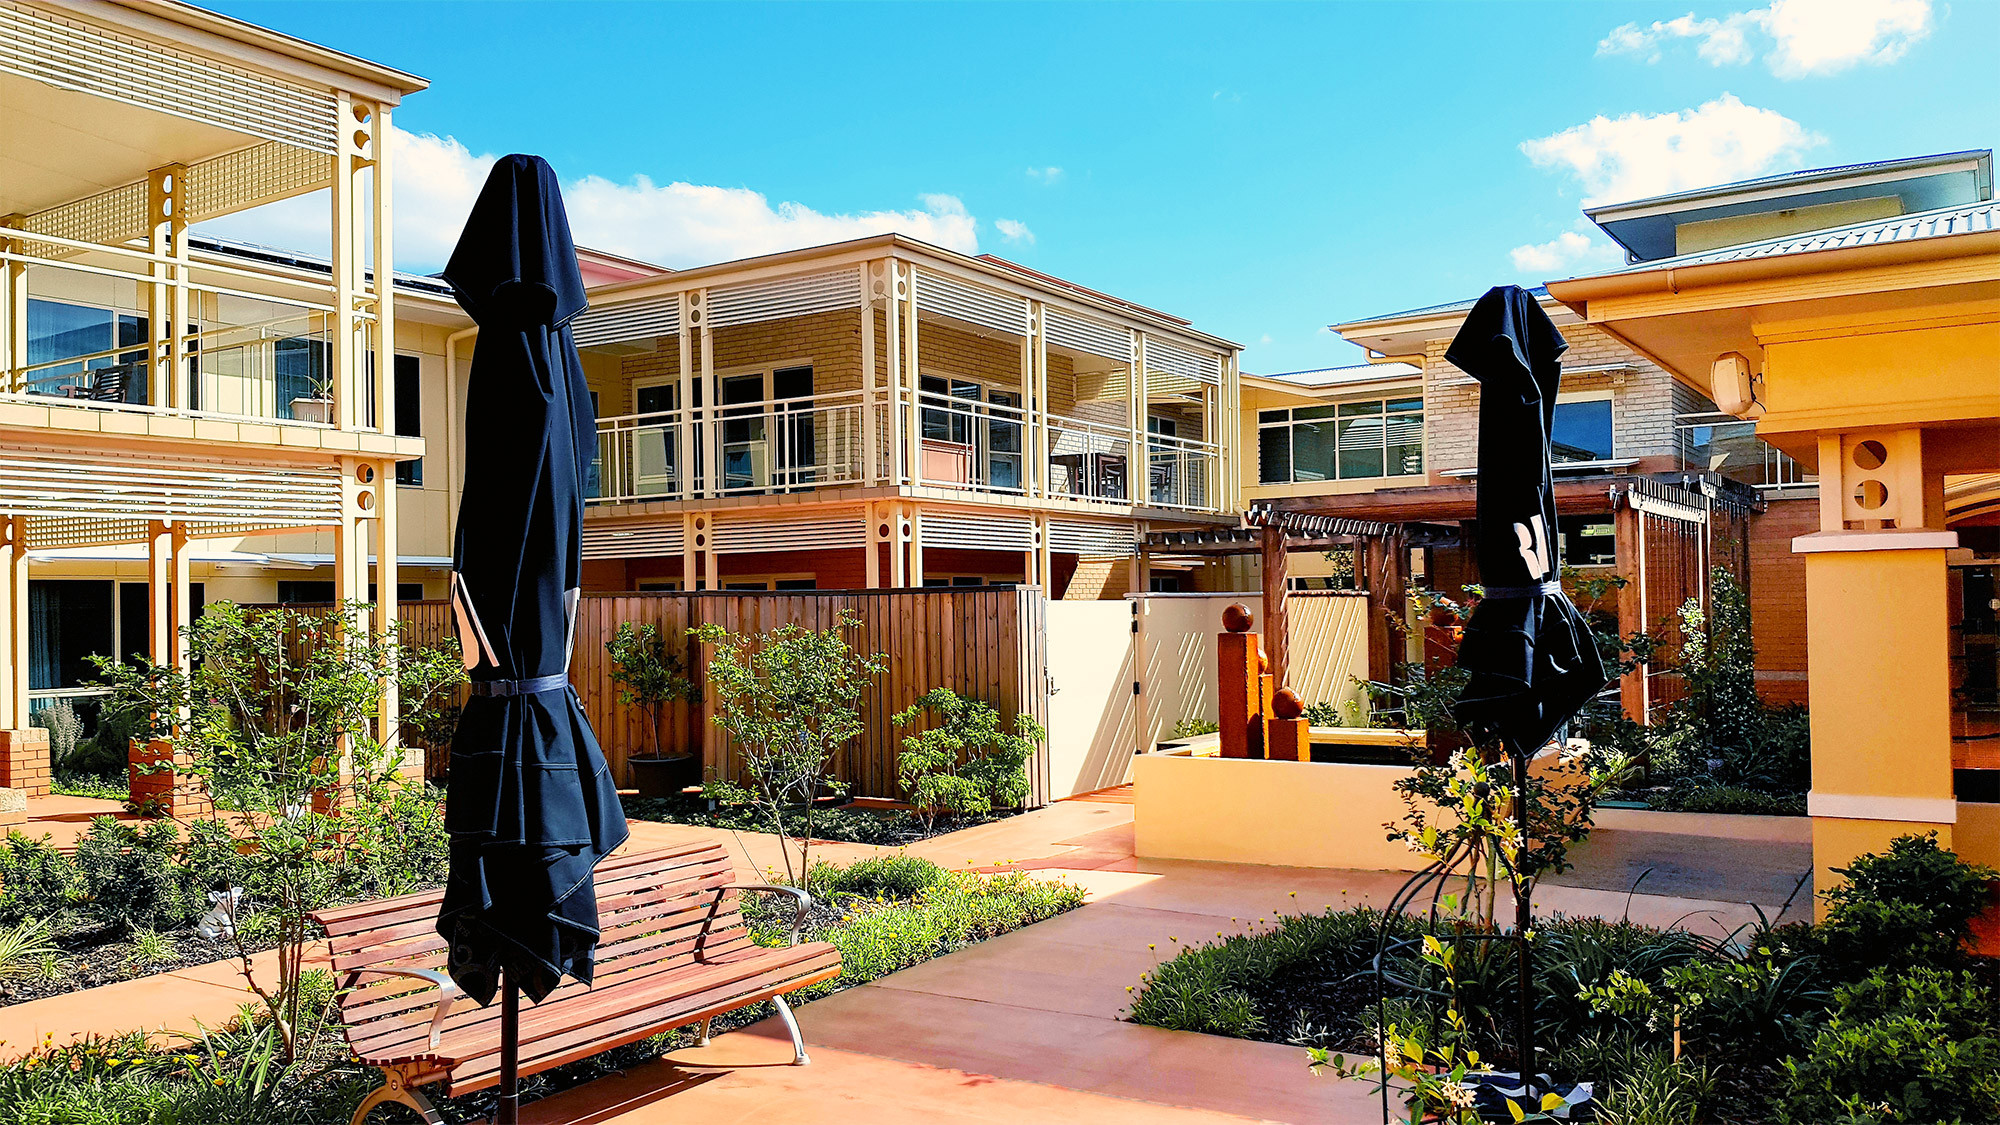 Central aged care courtyard